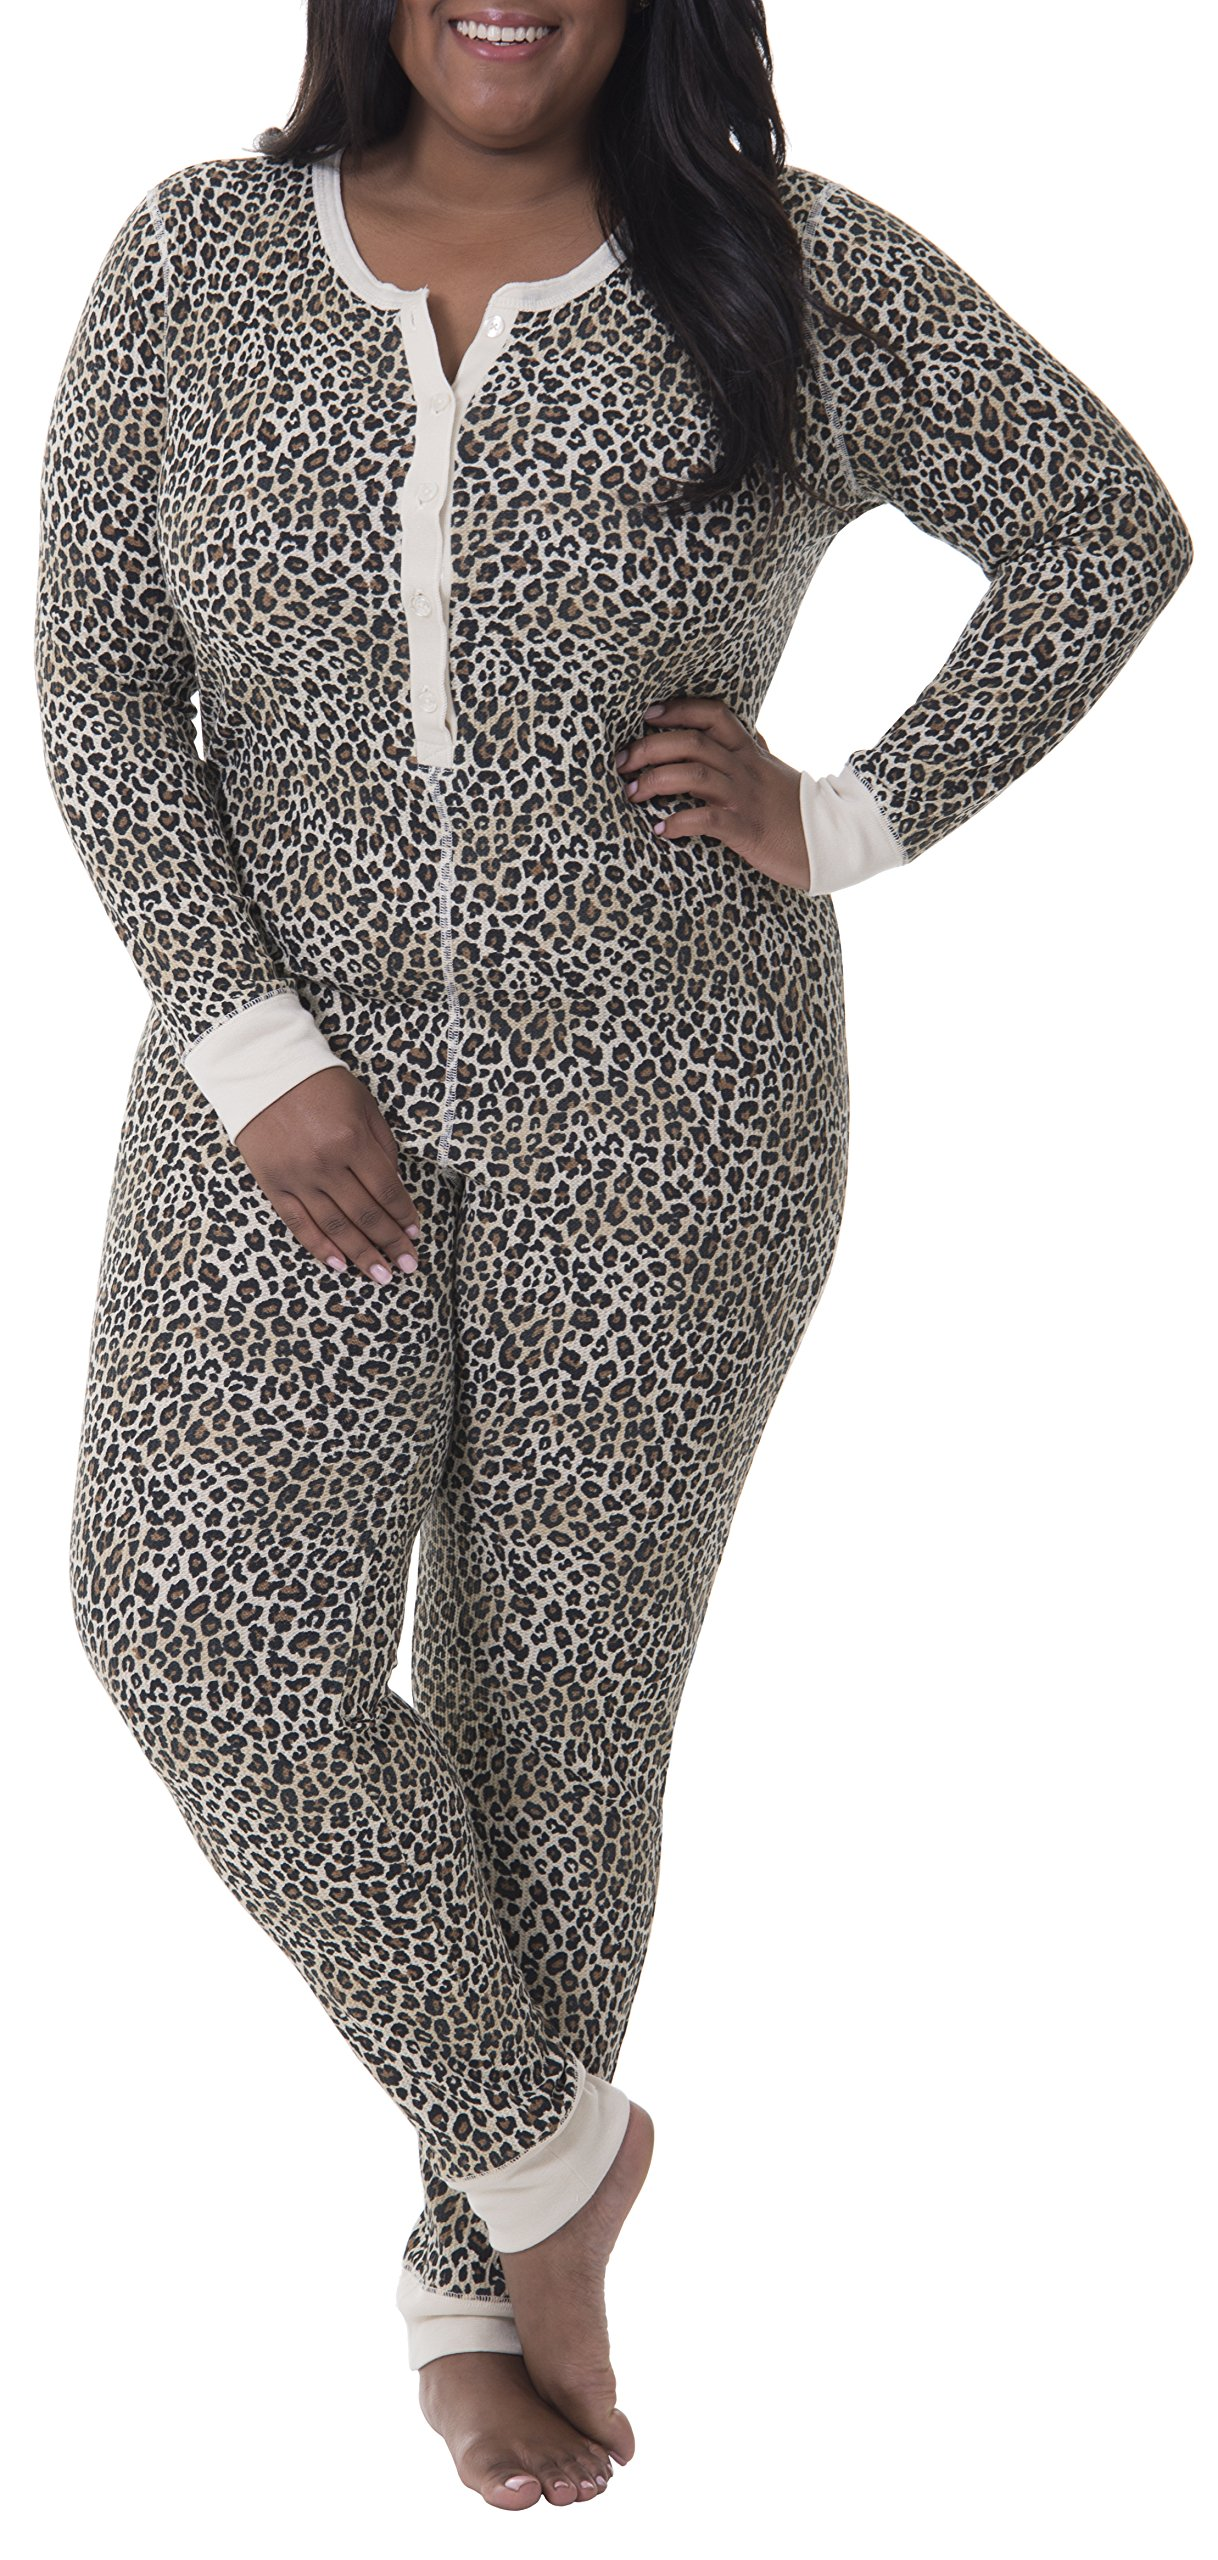 Fruit of the Loom Women's Plus Size Fit for Me Waffle Thermal Union Suit, Natural Animal Print, 3X